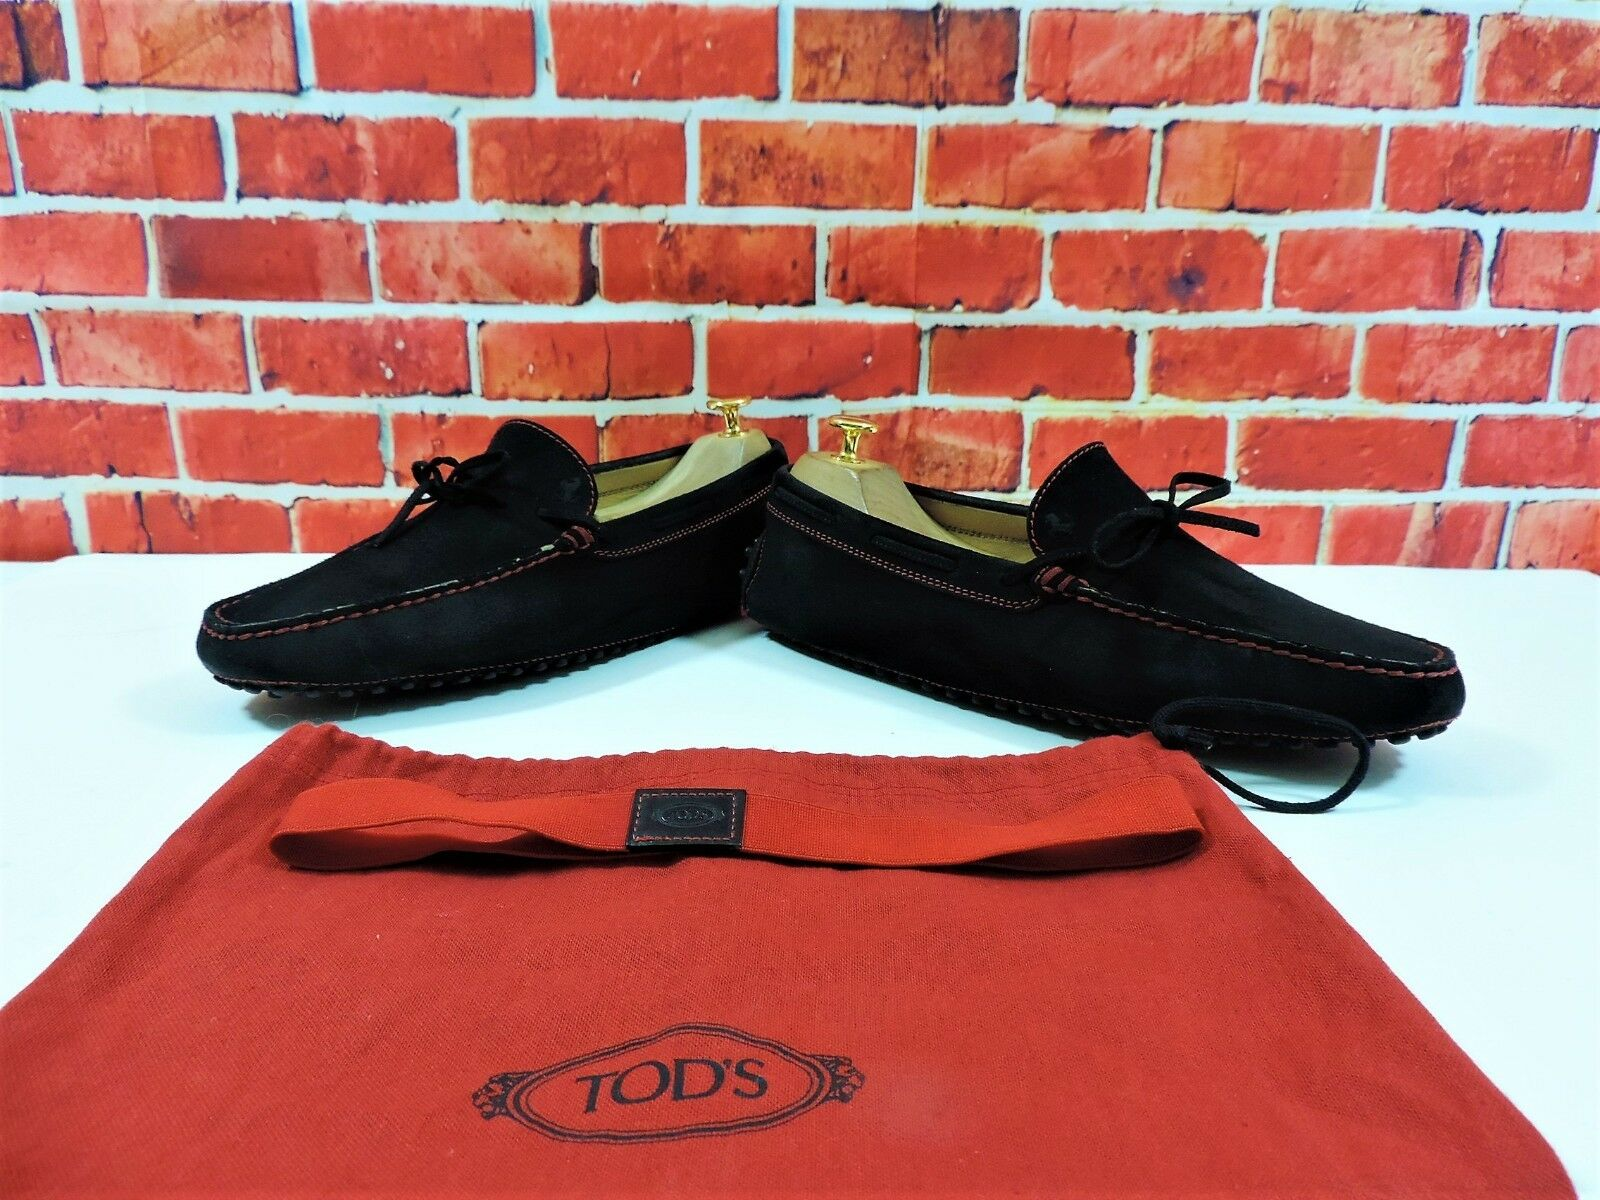 Tods Ferrari Suede Loafers Drivers US 8.5 V minor use Bag Strap